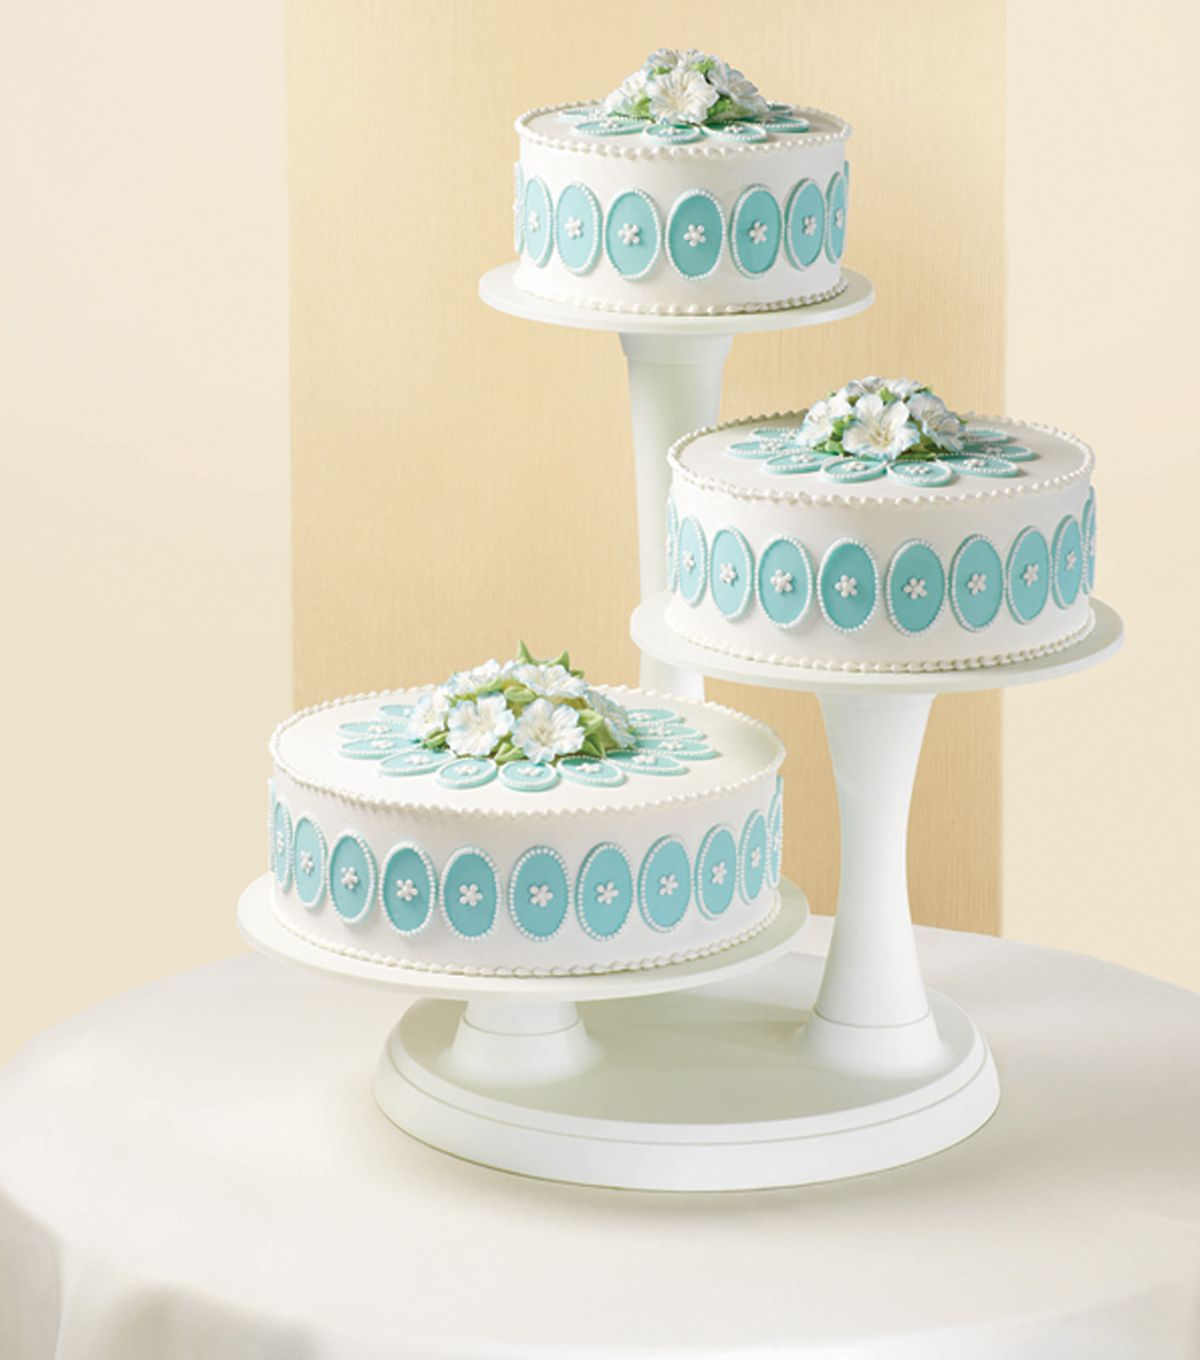 Wilton Tier Cake Stand Is A Distinctive Display Featuring